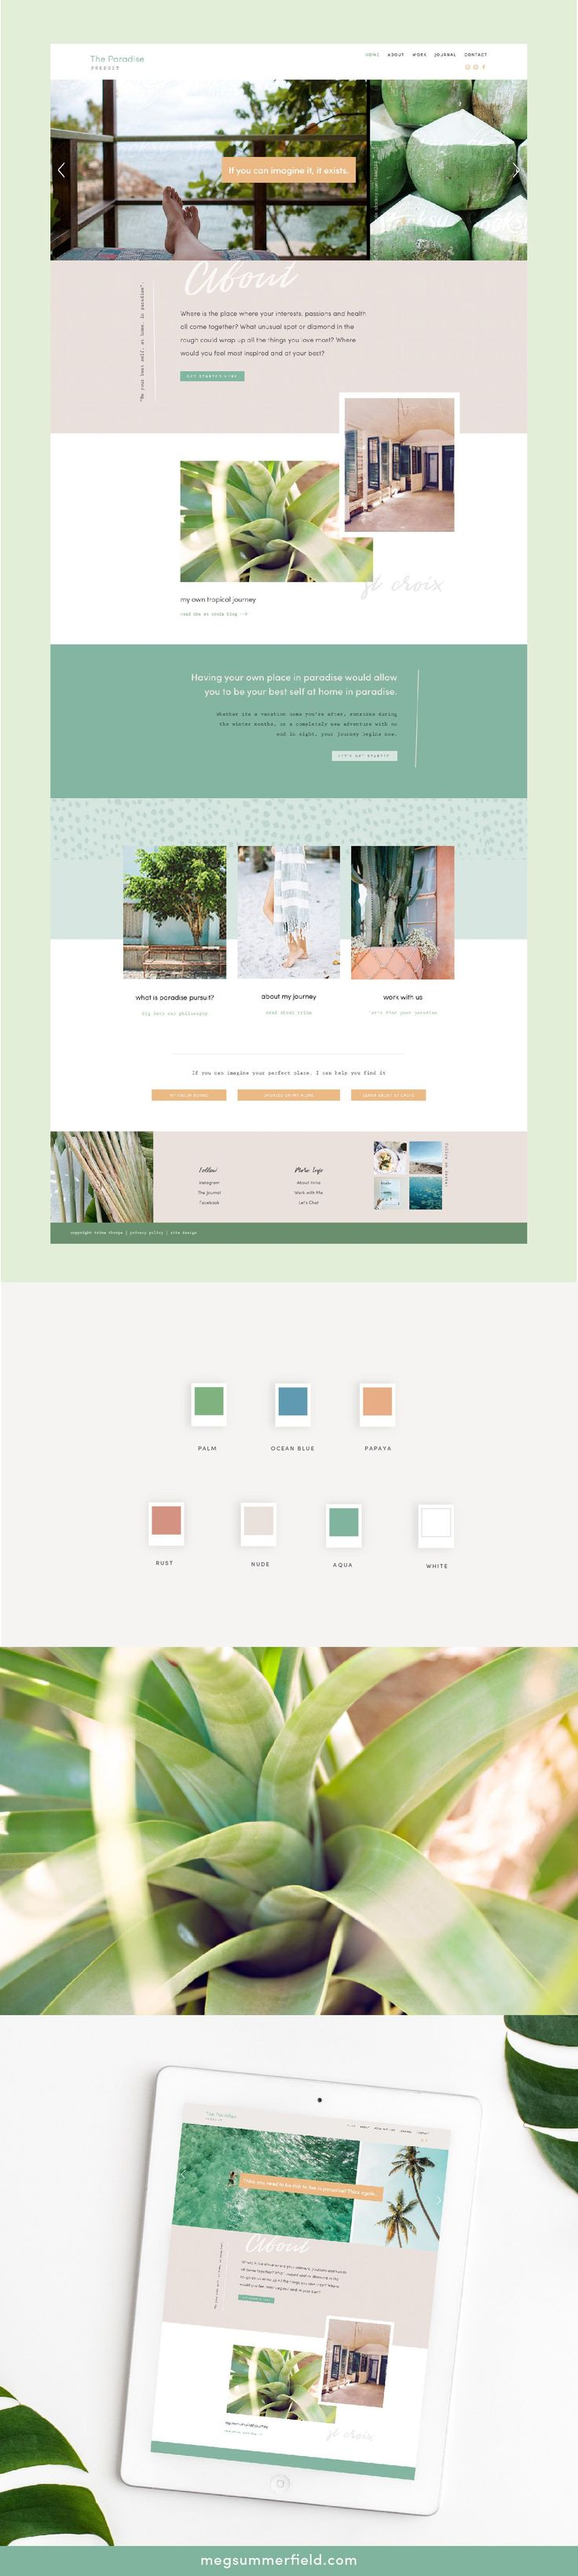 Bright and Tropical Squarespace Site Design